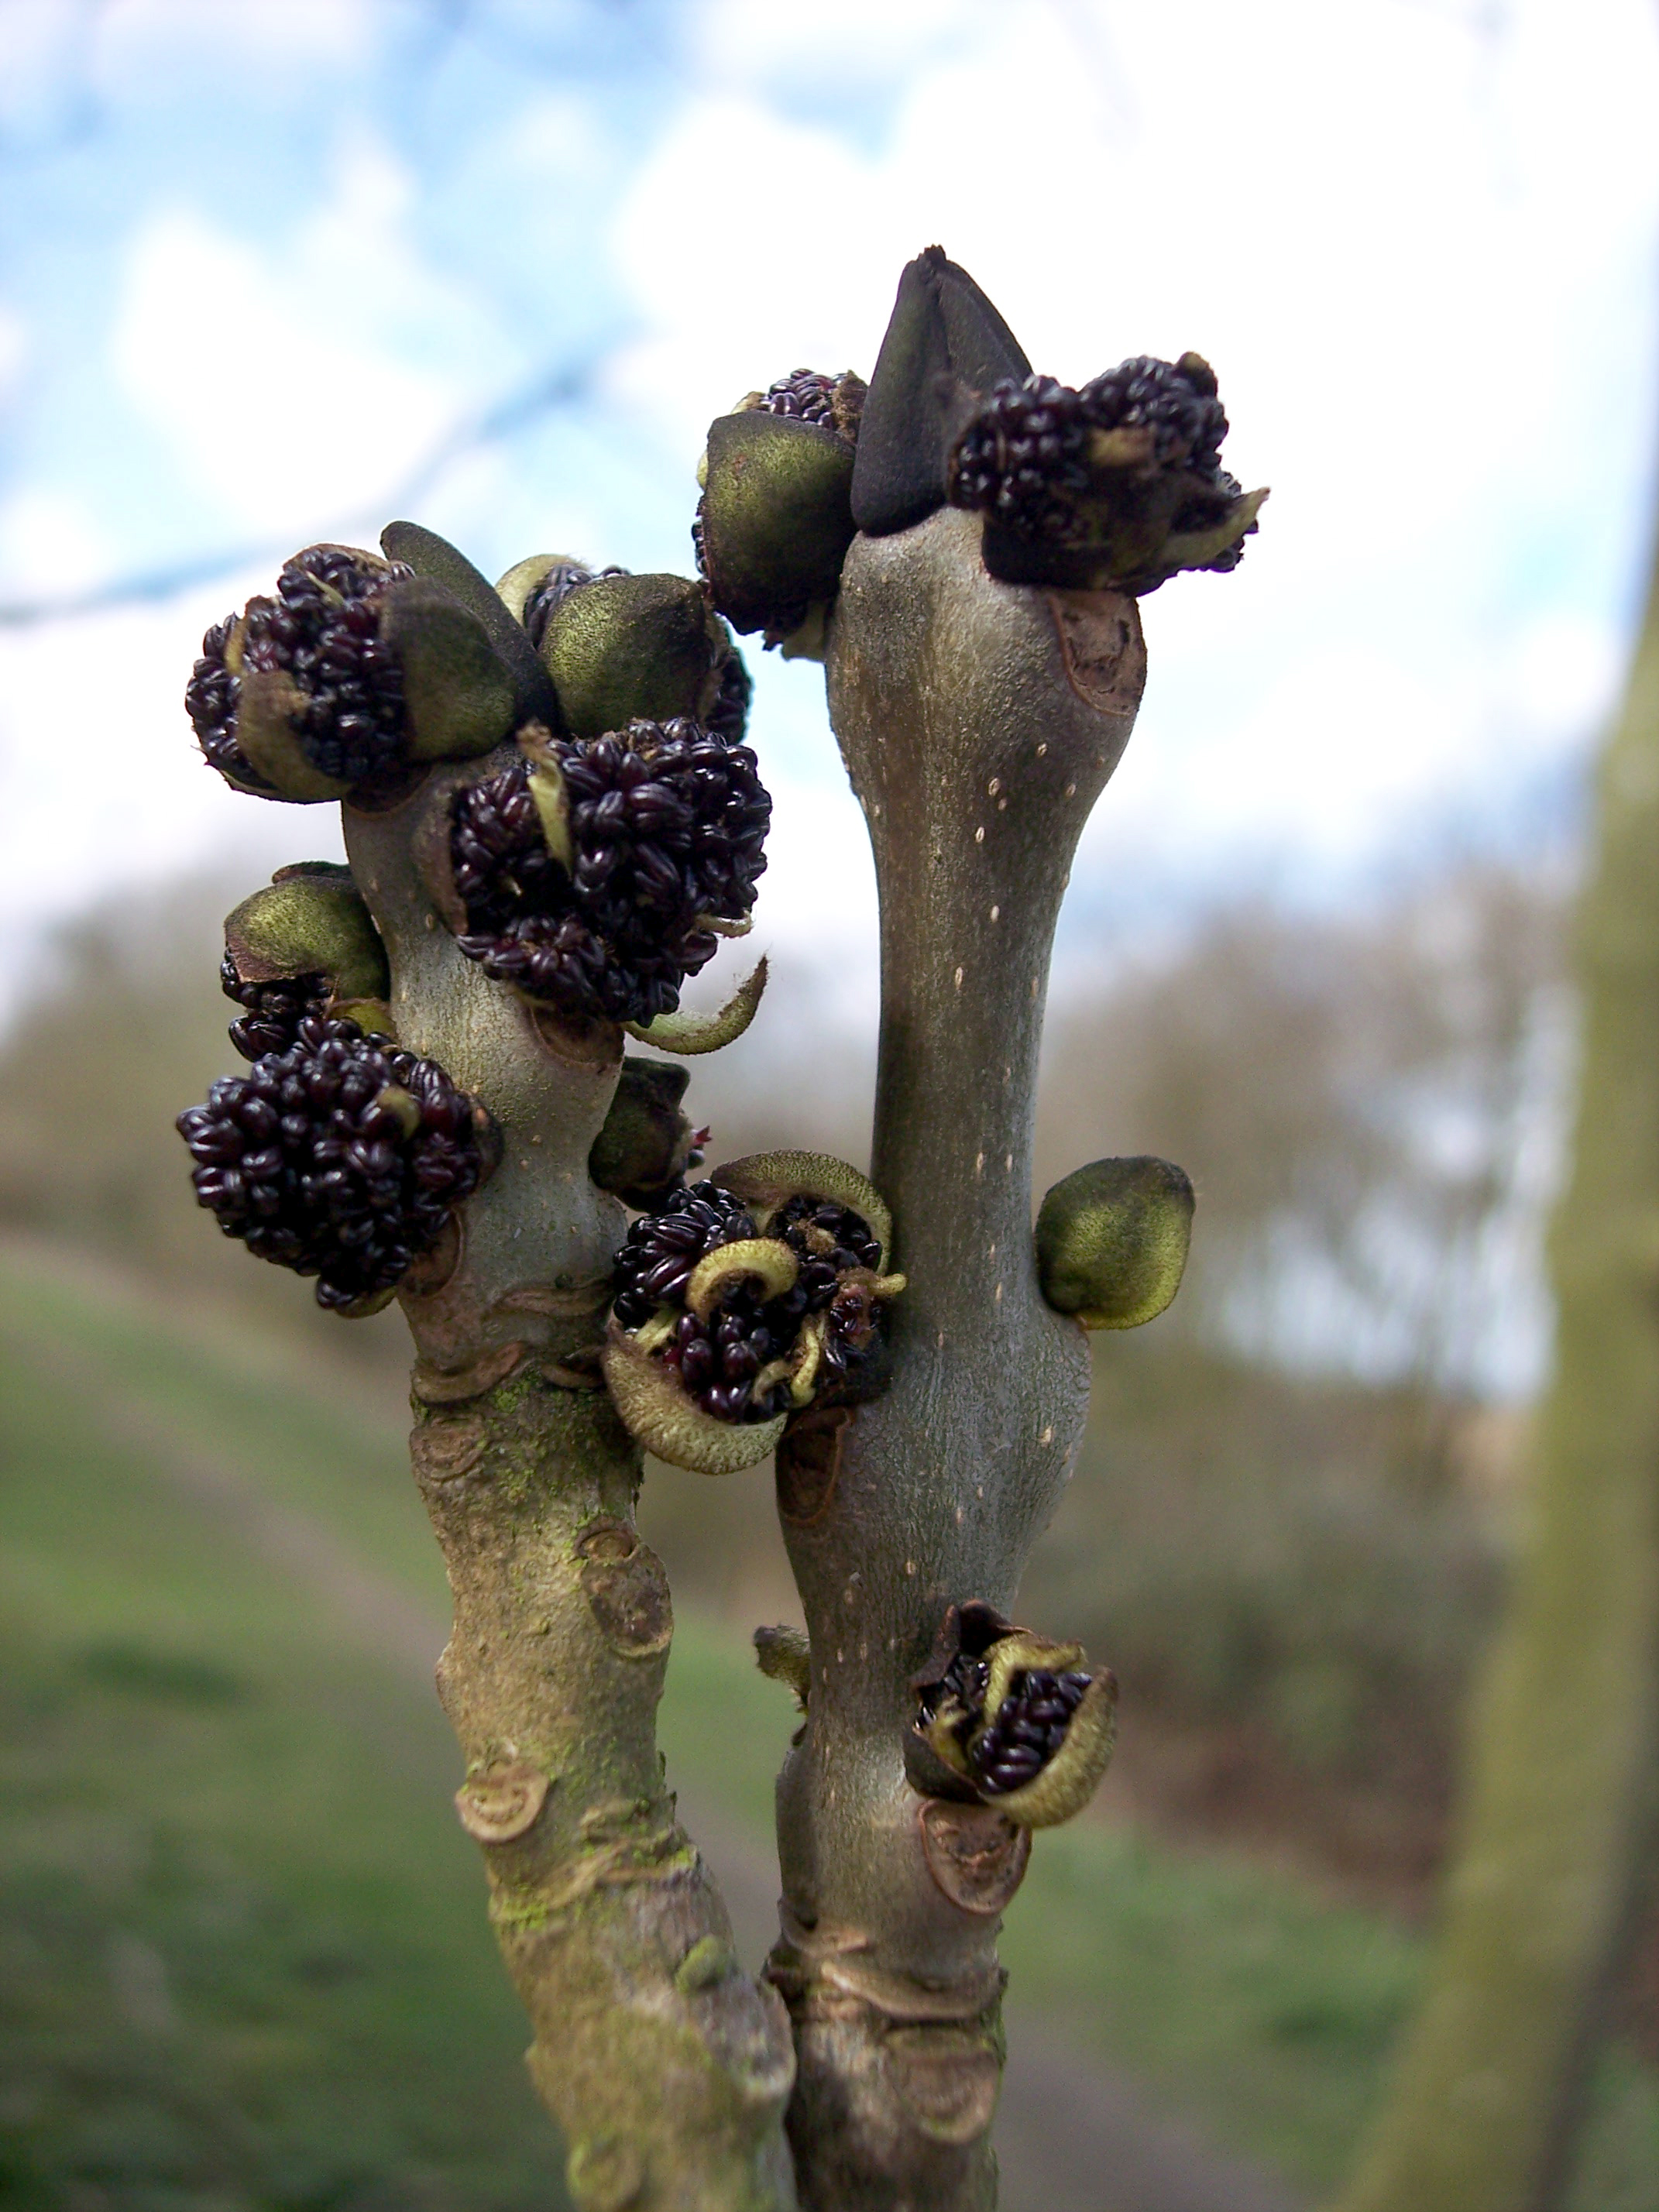 In late Autumn /winter, Ash can be easily distinguished by its black buds and in summer by its distinctive pinnate leaves. The black buds turn brown and flowers appear, usually in April, before the leaves and are wind pollinated. It produces both male flowers (pictured), female and bisexual flowers....